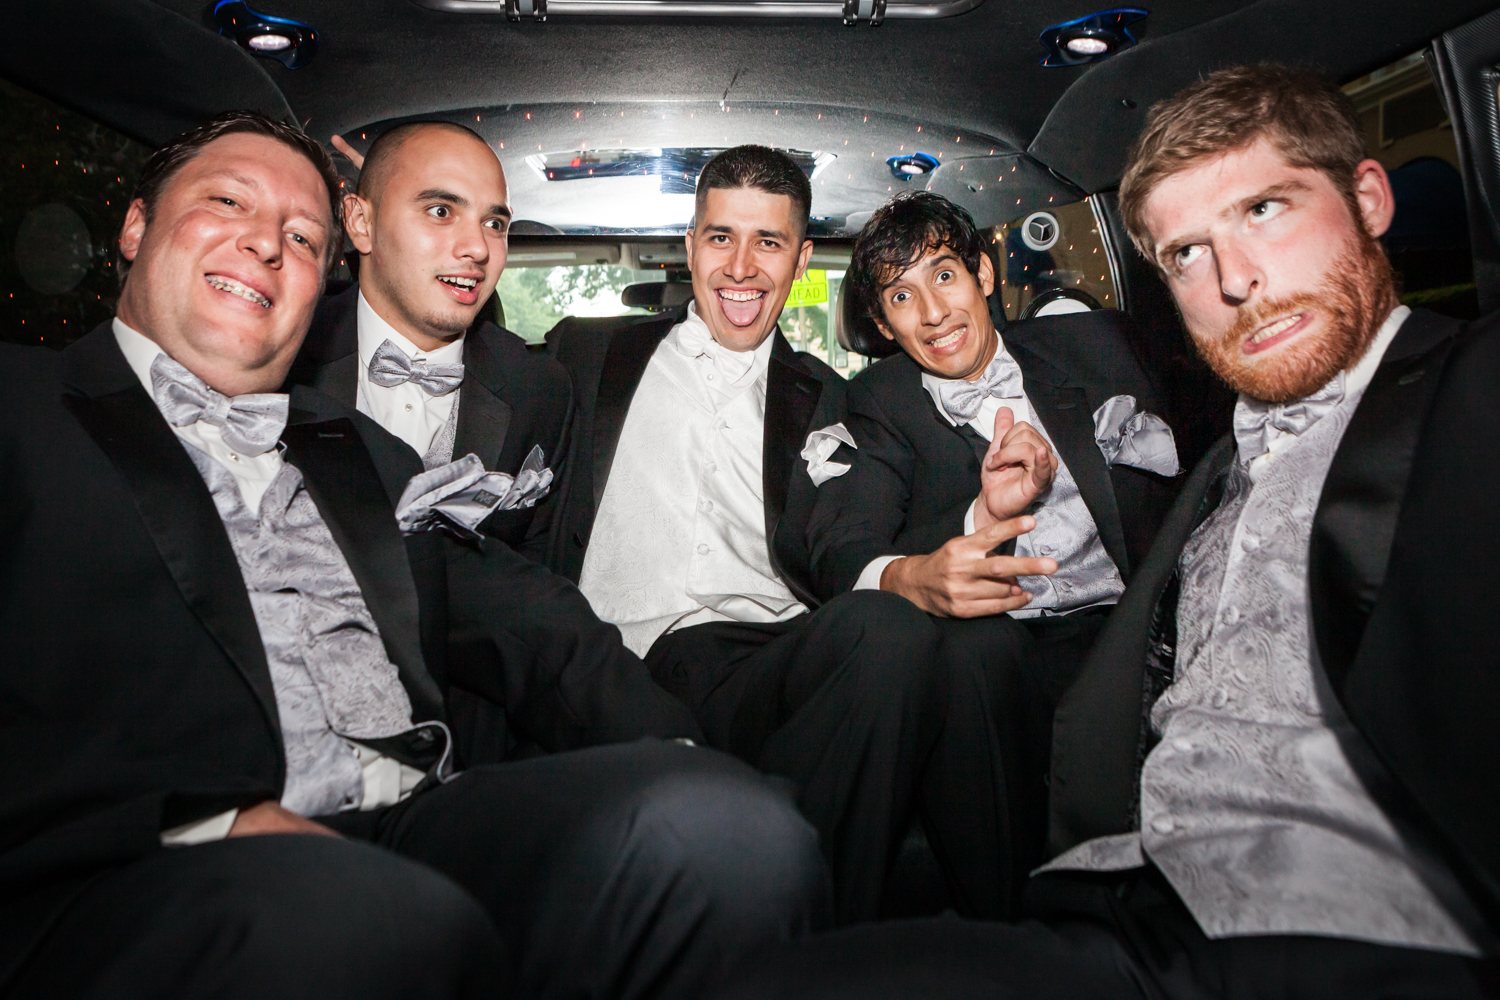 Groom and groomsmen making funny faces in the back of a limo